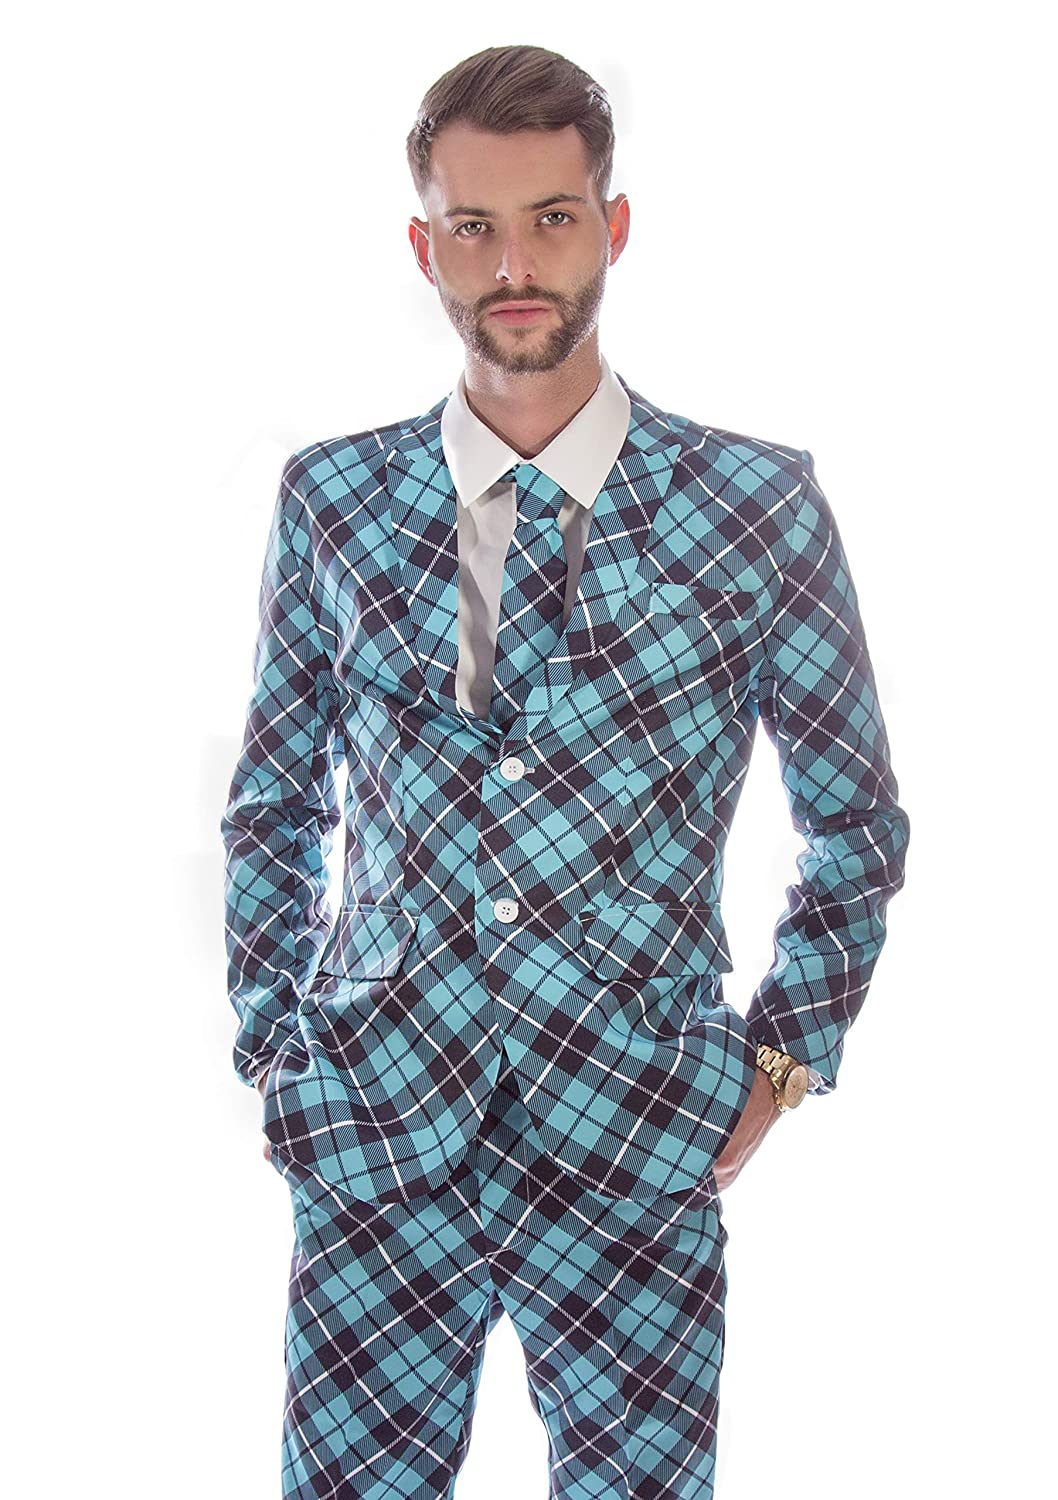 36-38 Chest Black and White Striped Stag Suit